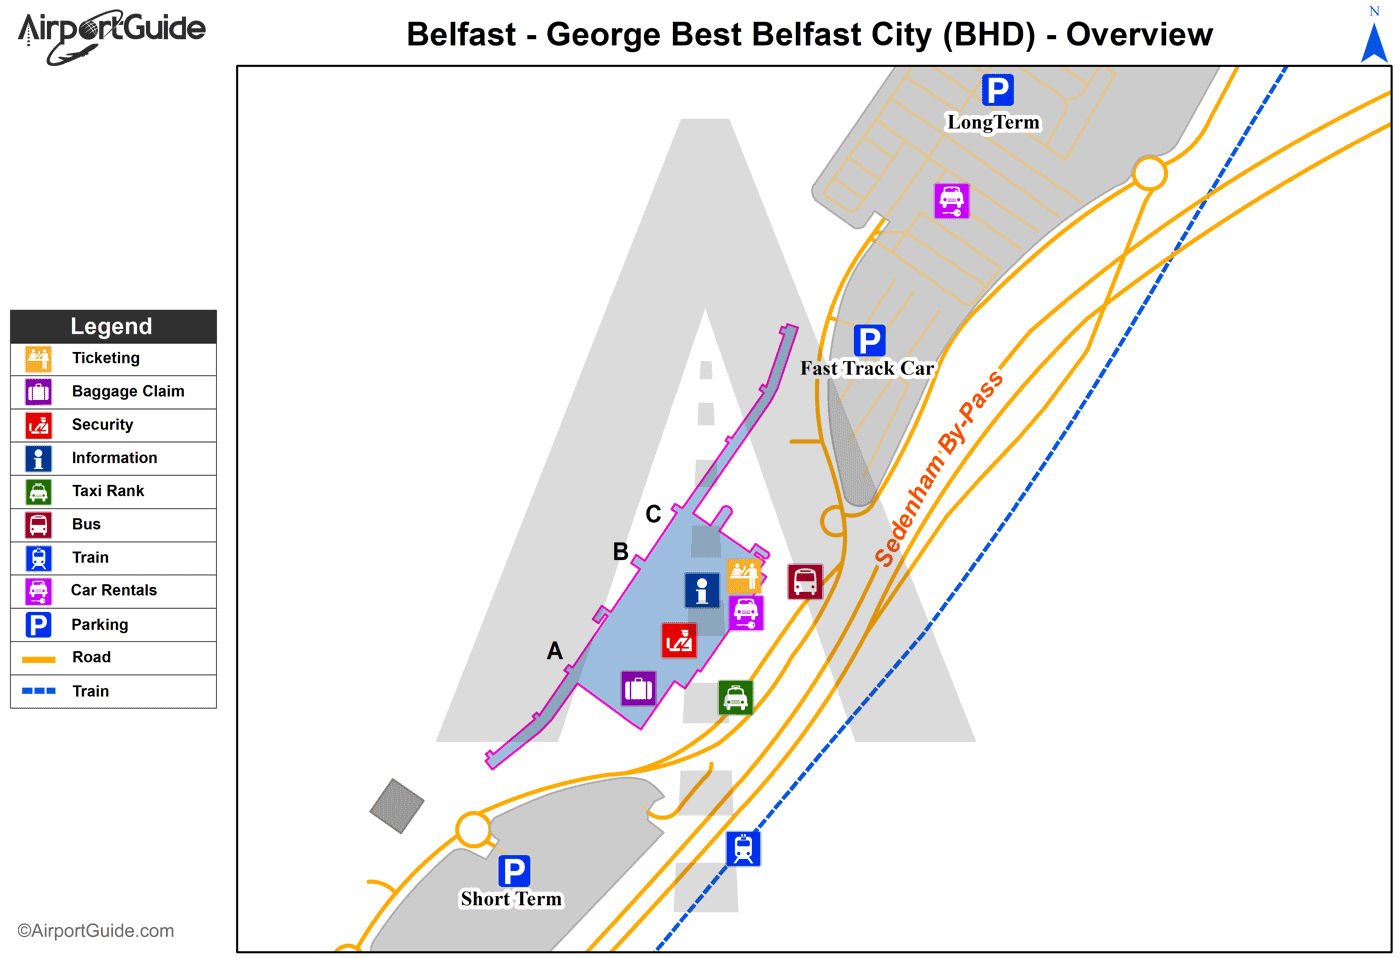 Belfast - George Best Belfast City (BHD) Airport Terminal Map - Overview